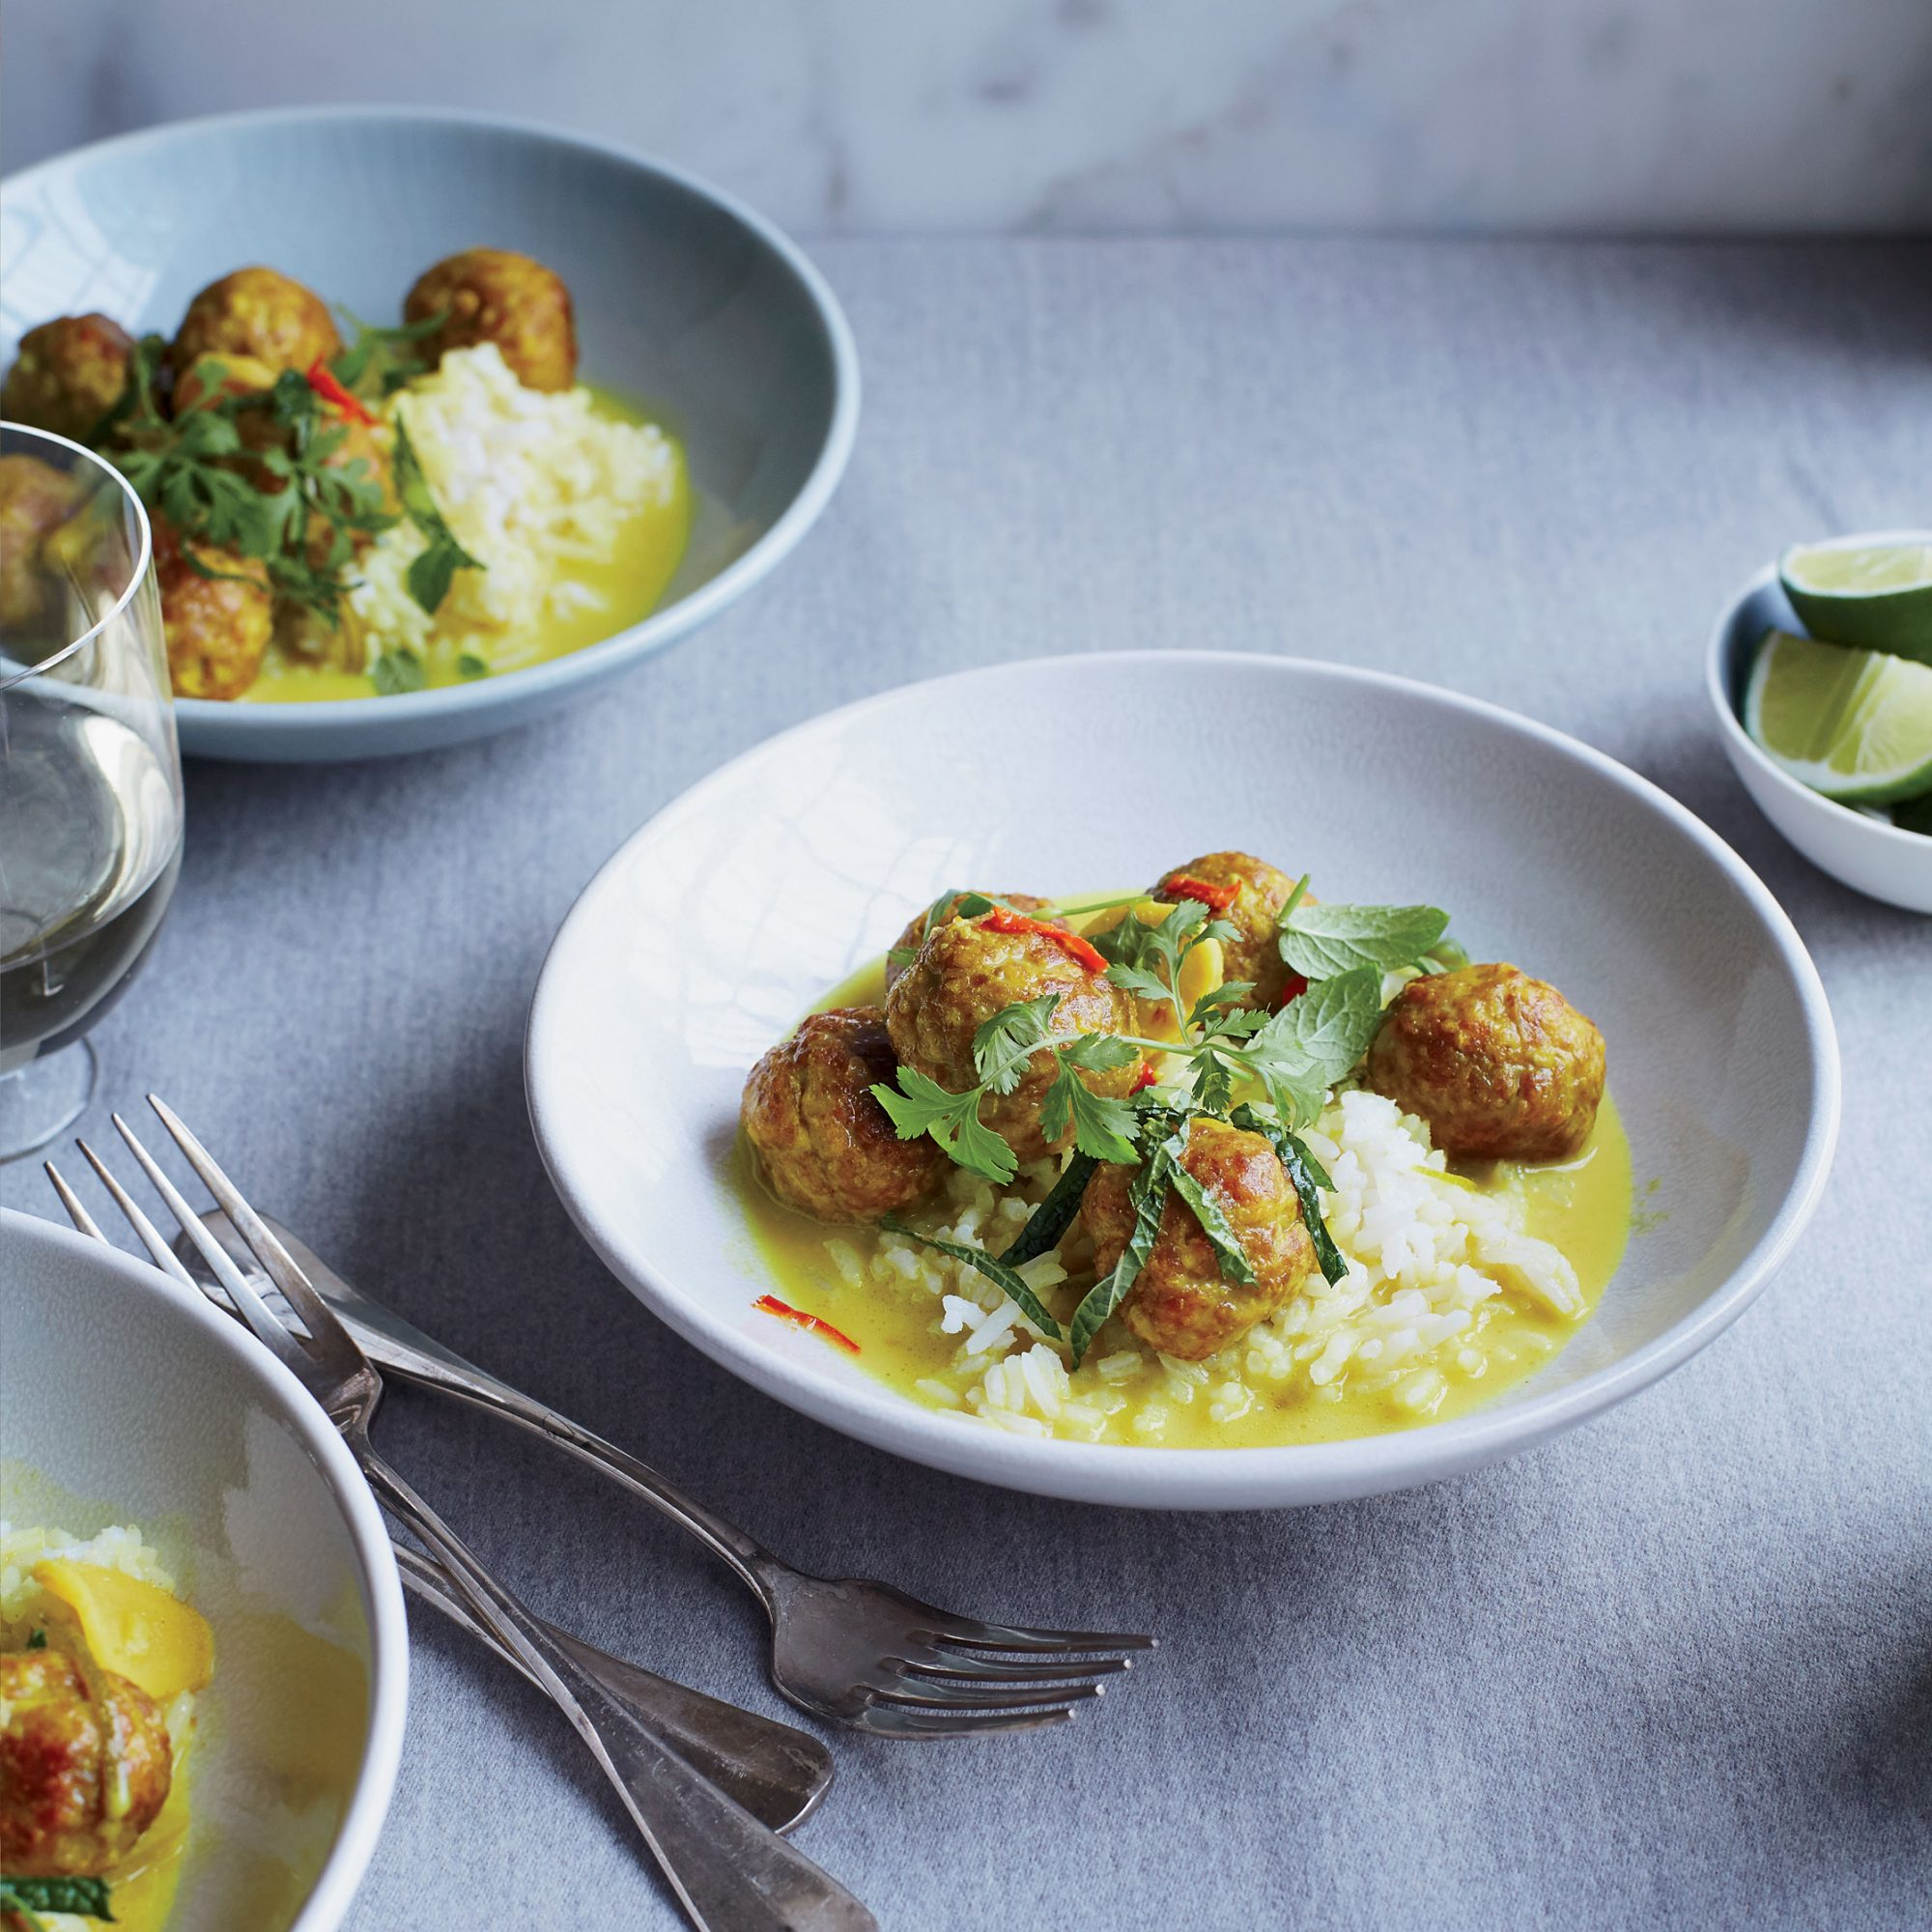 Ginger-Braised Pork Meatballs in Coconut Broth